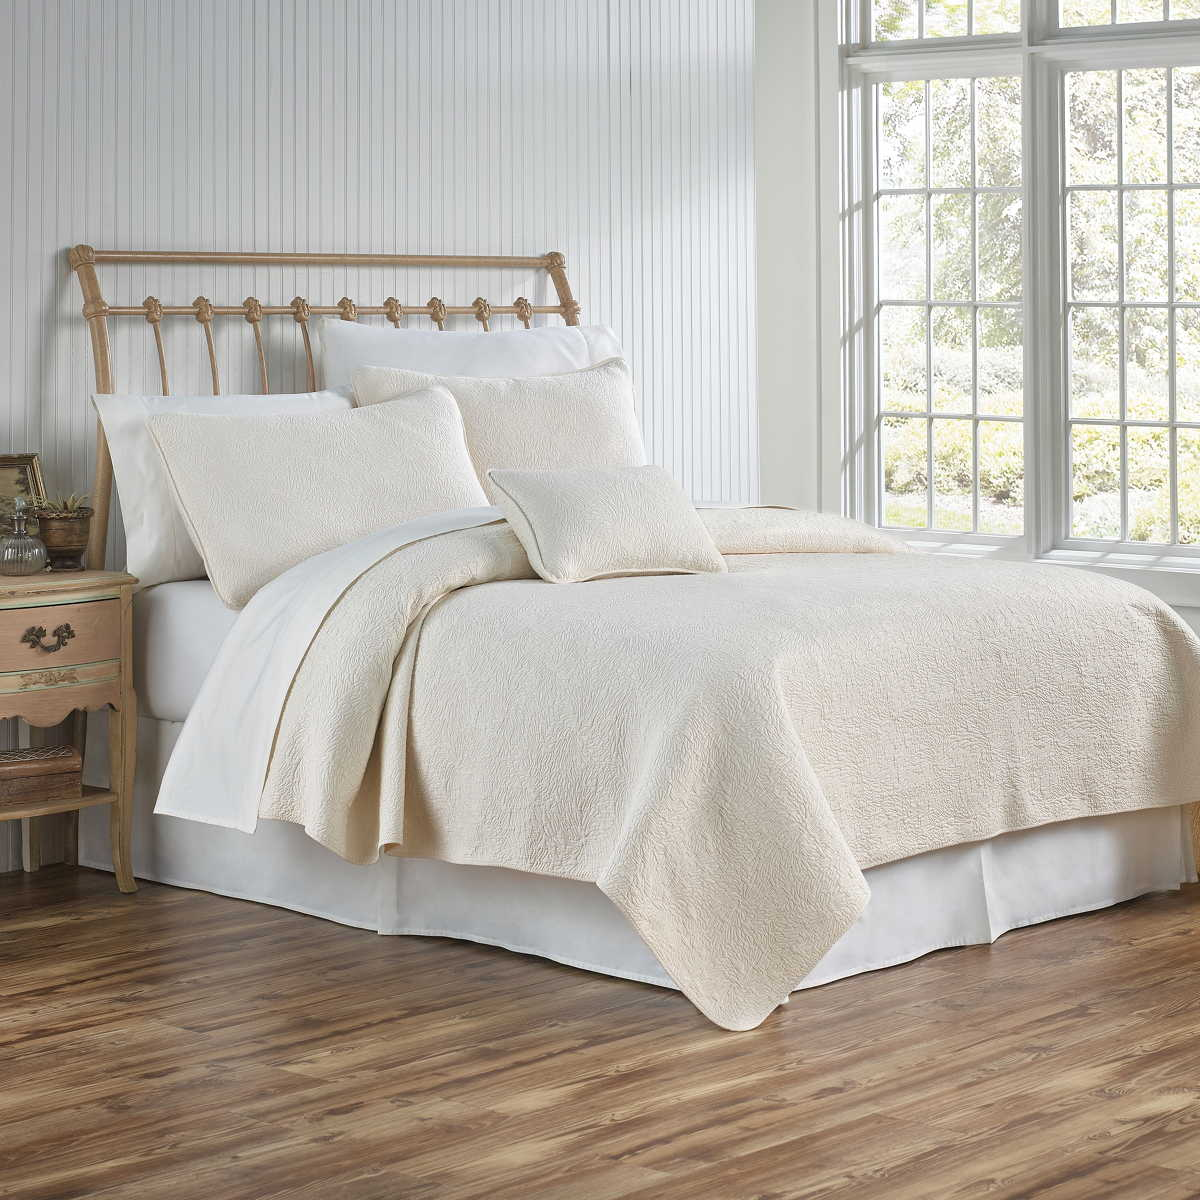 Traditions Linens Bedding Couture Matelasse Coverlet and Shams